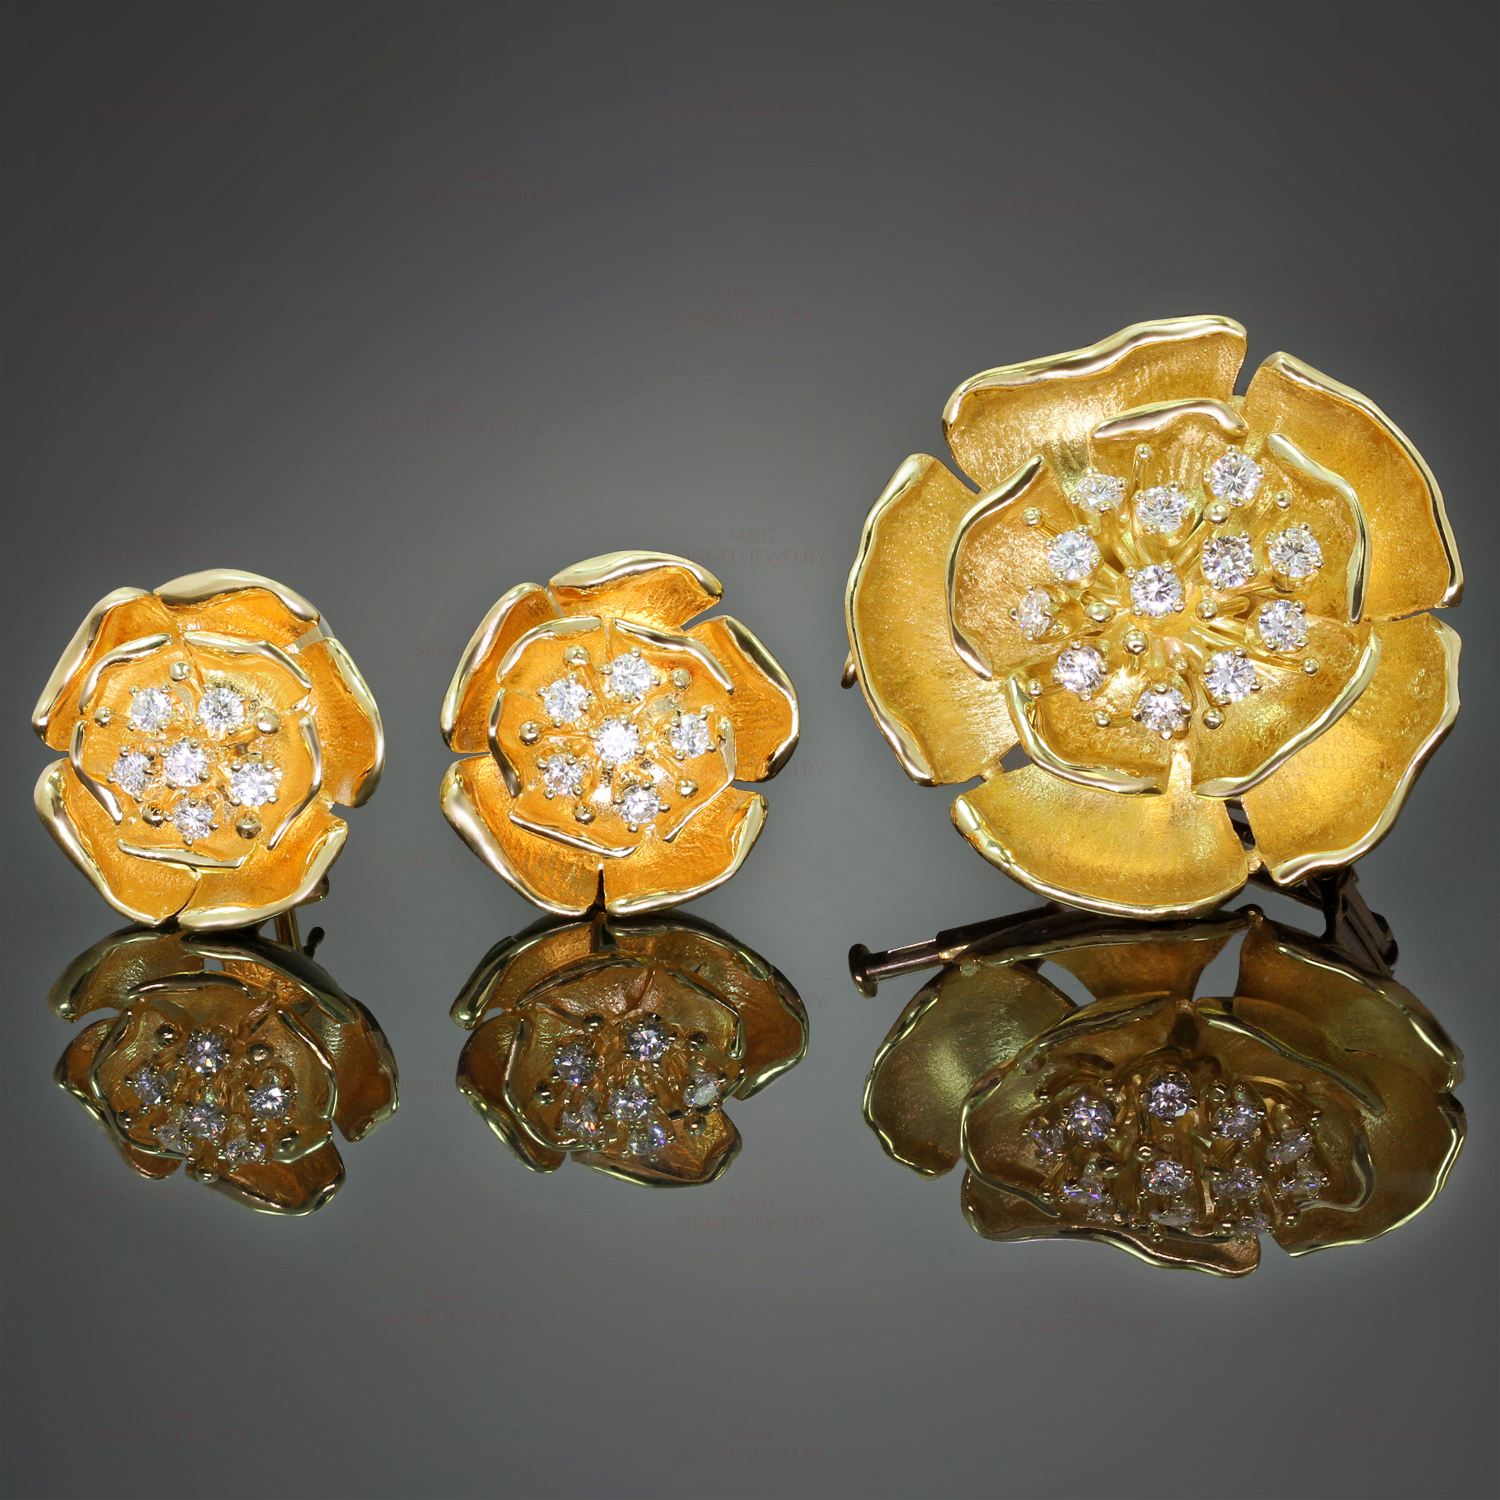 PIAGET Diamond 18k Yellow Gold Flower Earrings & Brooch Pendant Set